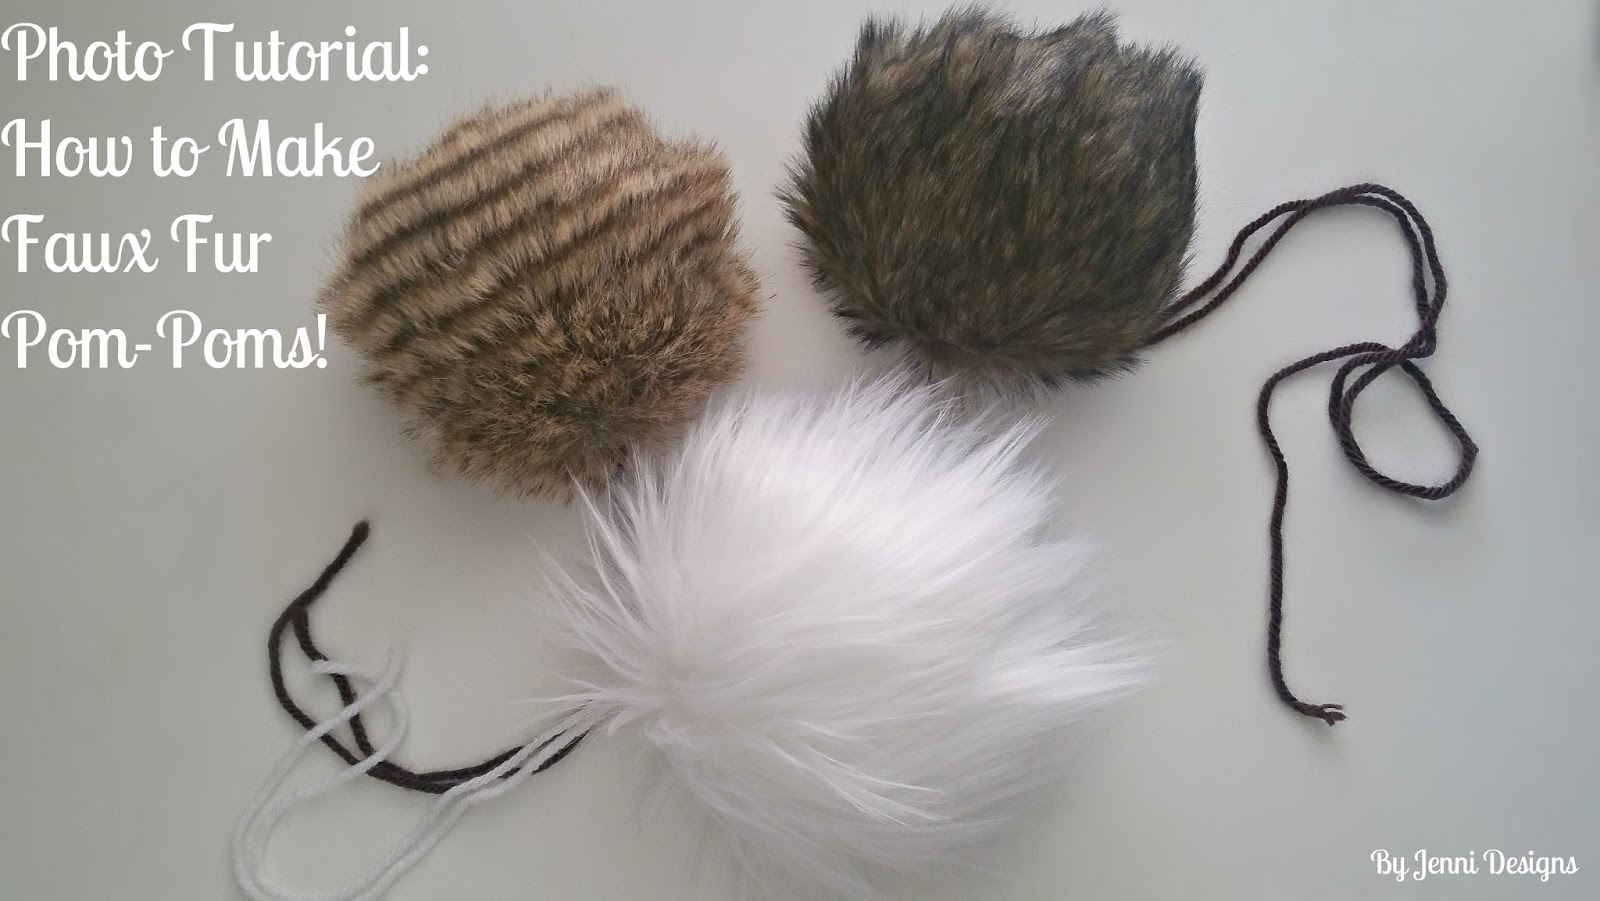 95551e58163 By Jenni Designs  Photo Tutorial  How to Make Faux Fur Pom-Poms!